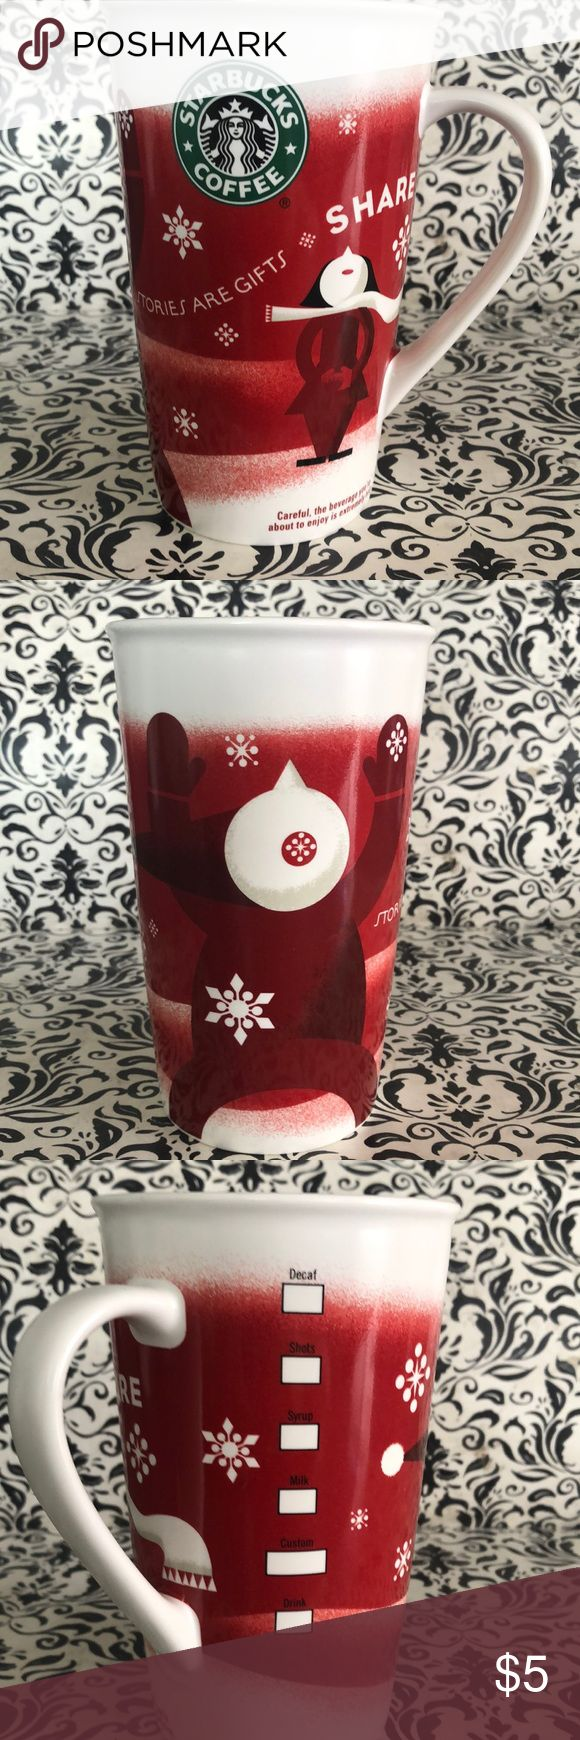 Starbucks Christmas cheer mug in 2020 (With images ...